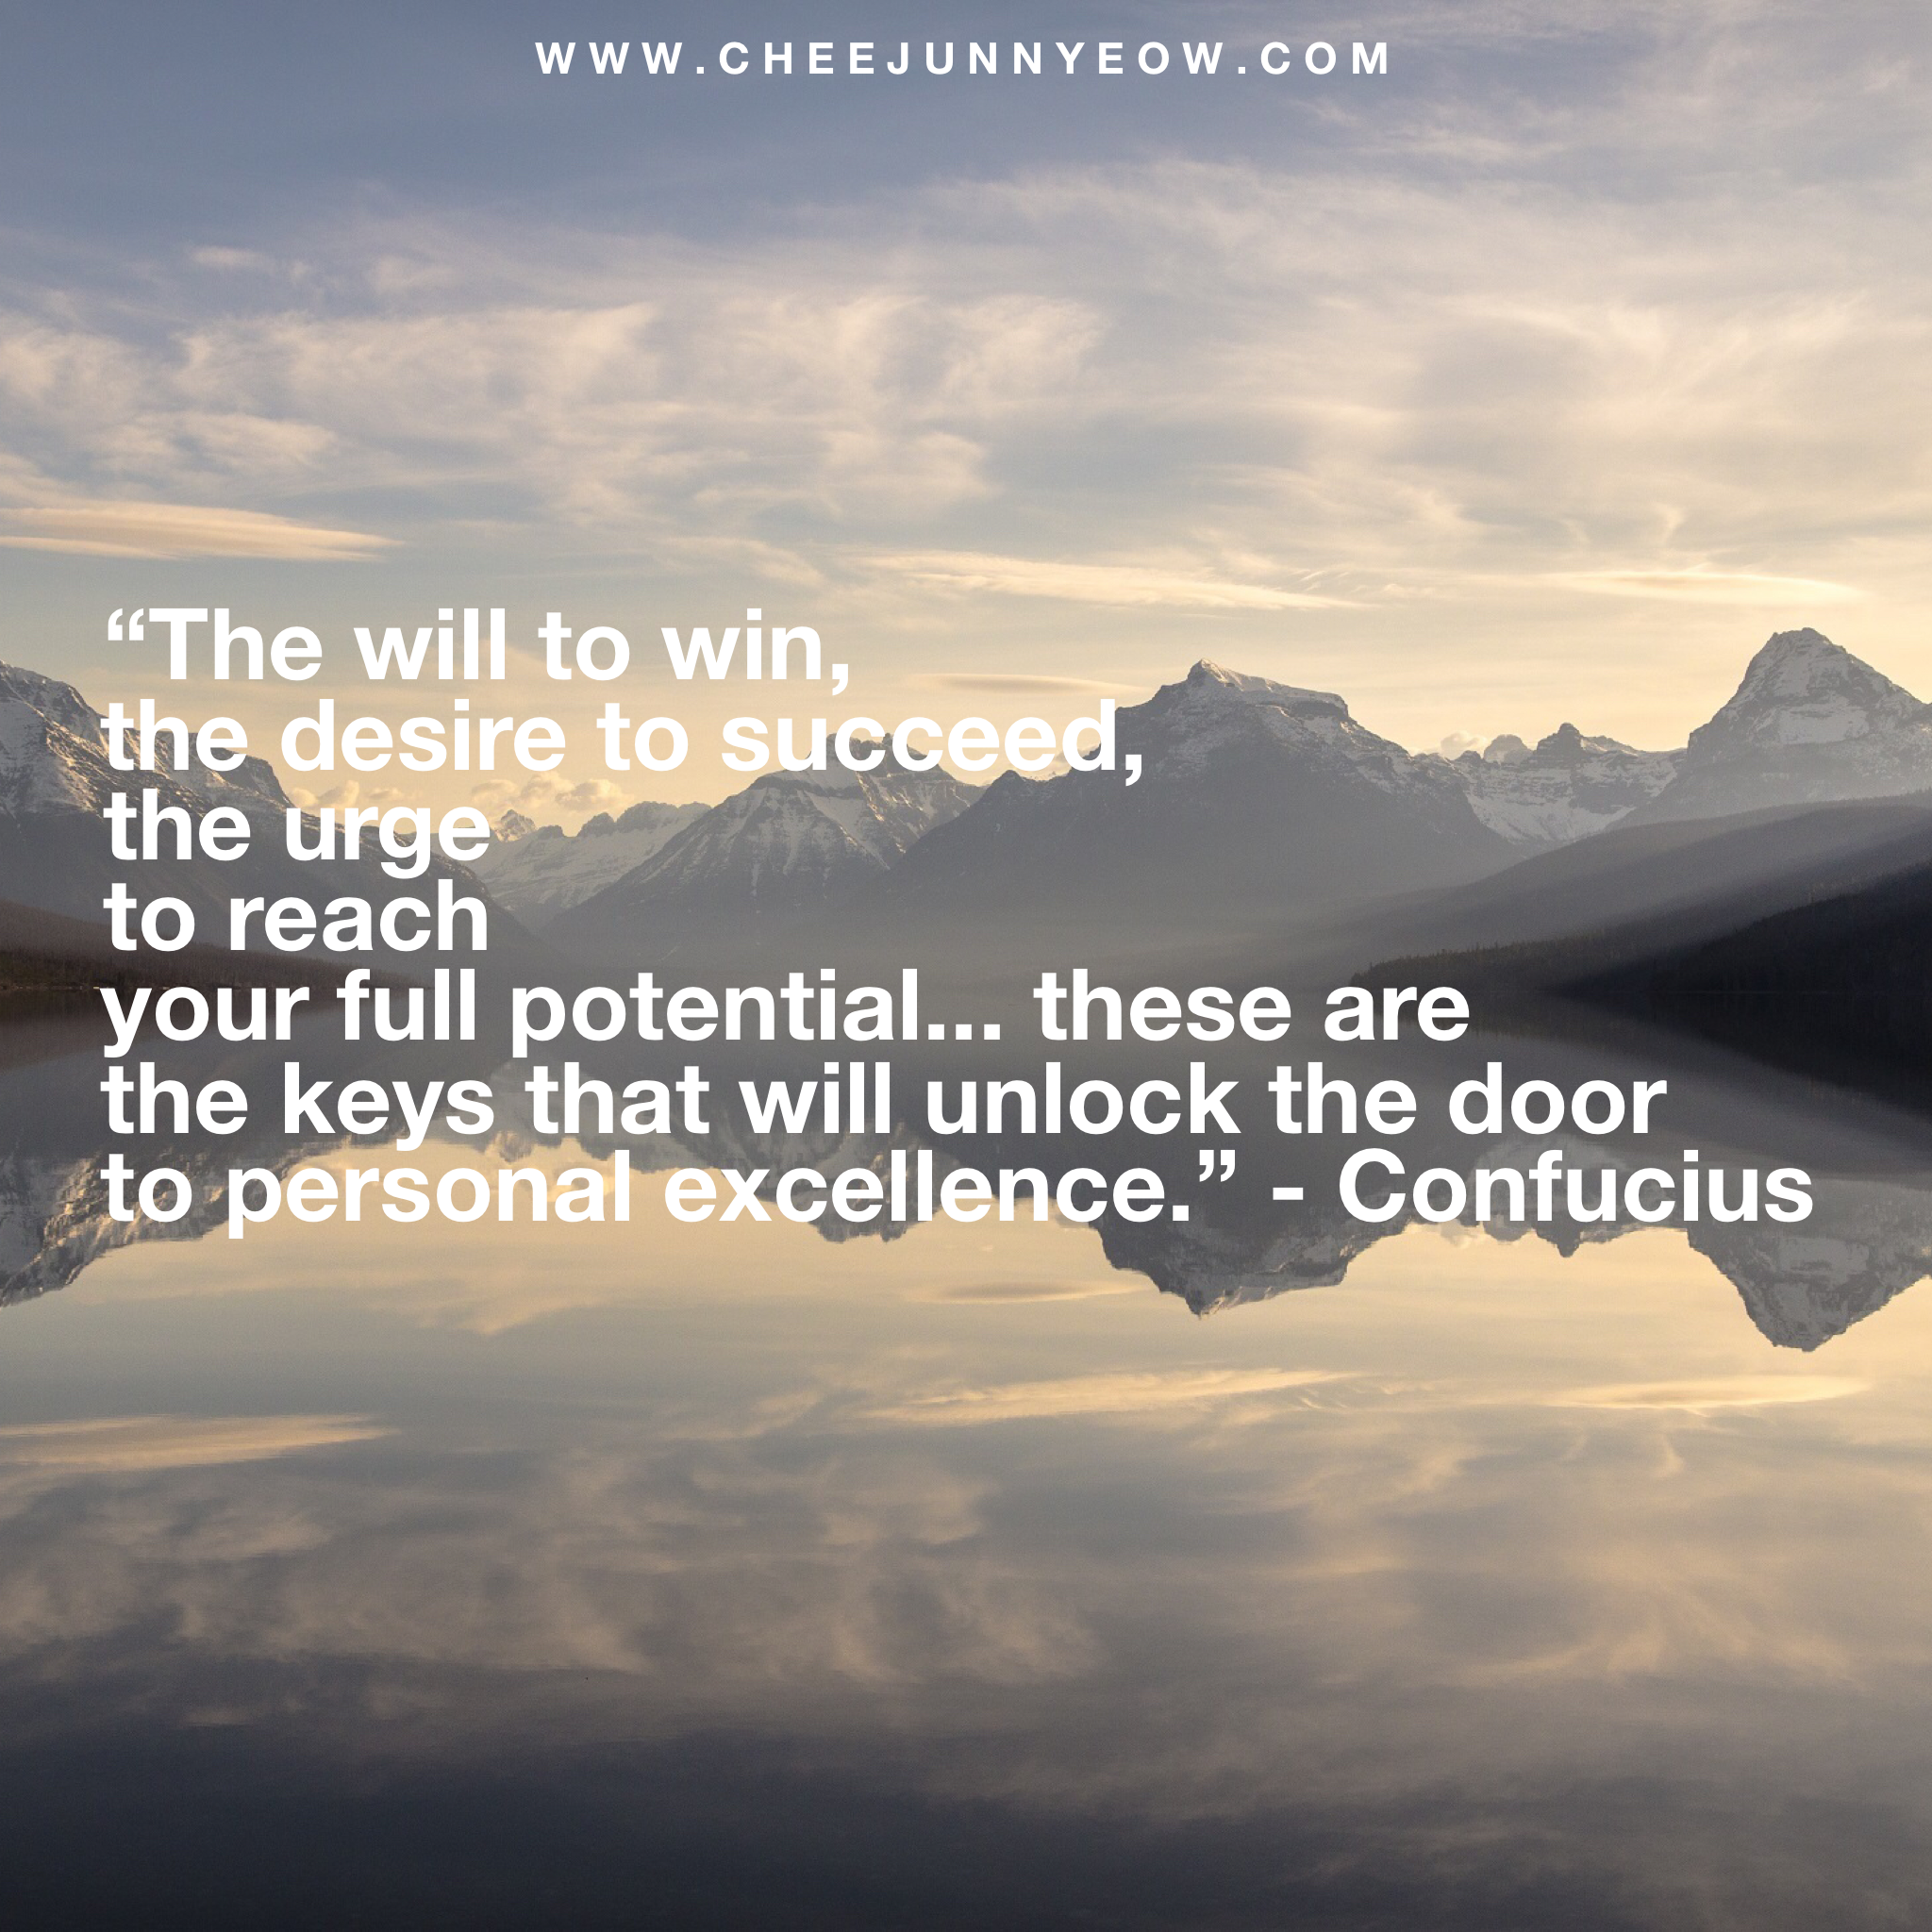 the will to win, the desire to succeed, the urge to reach your full potential; these are the keys that will unlock the door to personal excellence